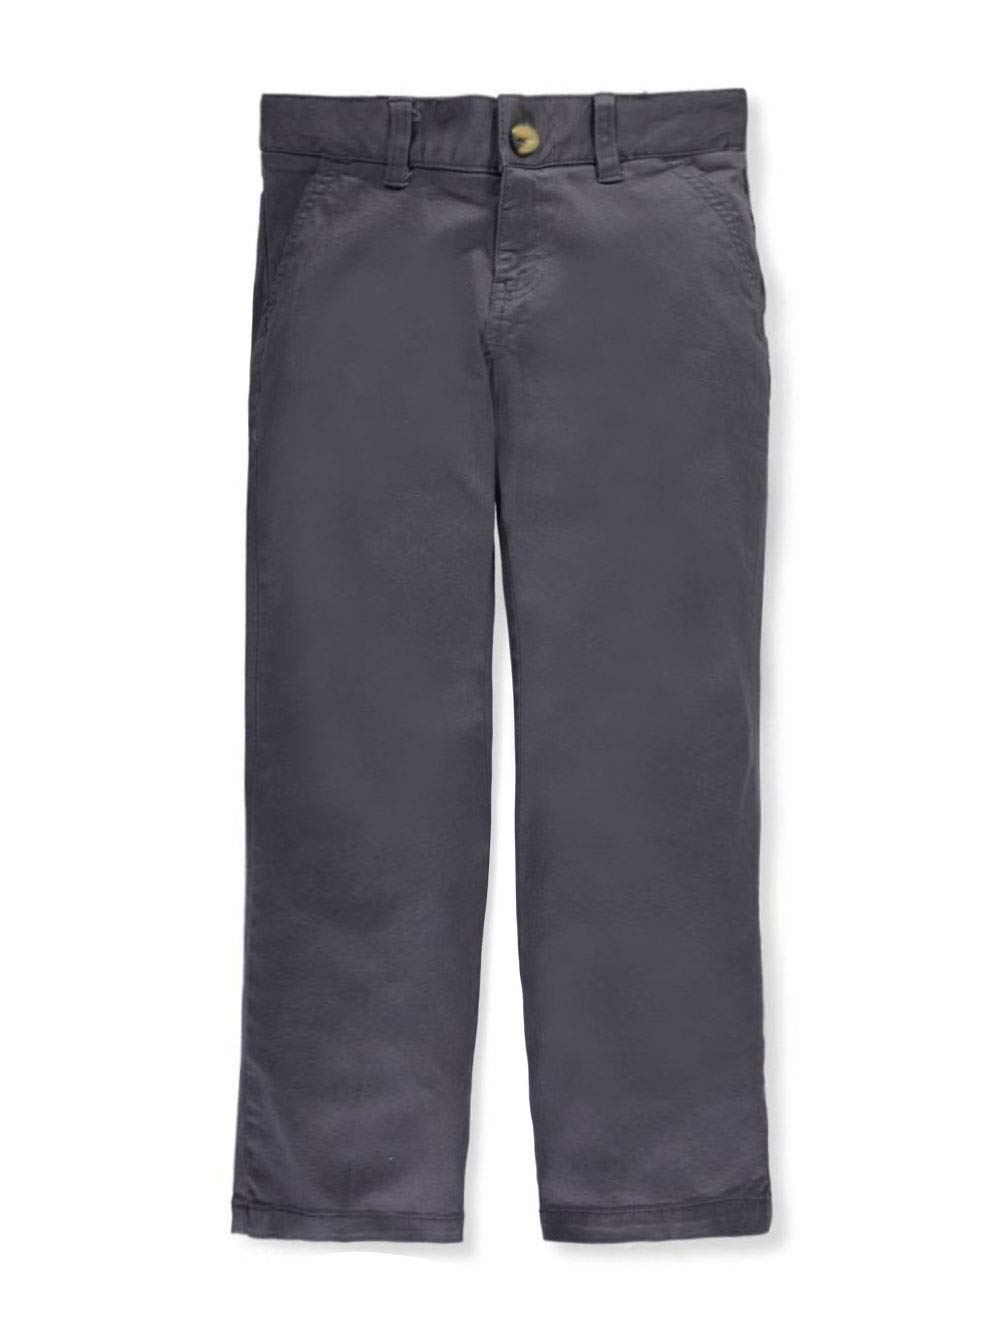 French Toast Big Boys' Twill Straight Fit Chino Pants - Gray, 10